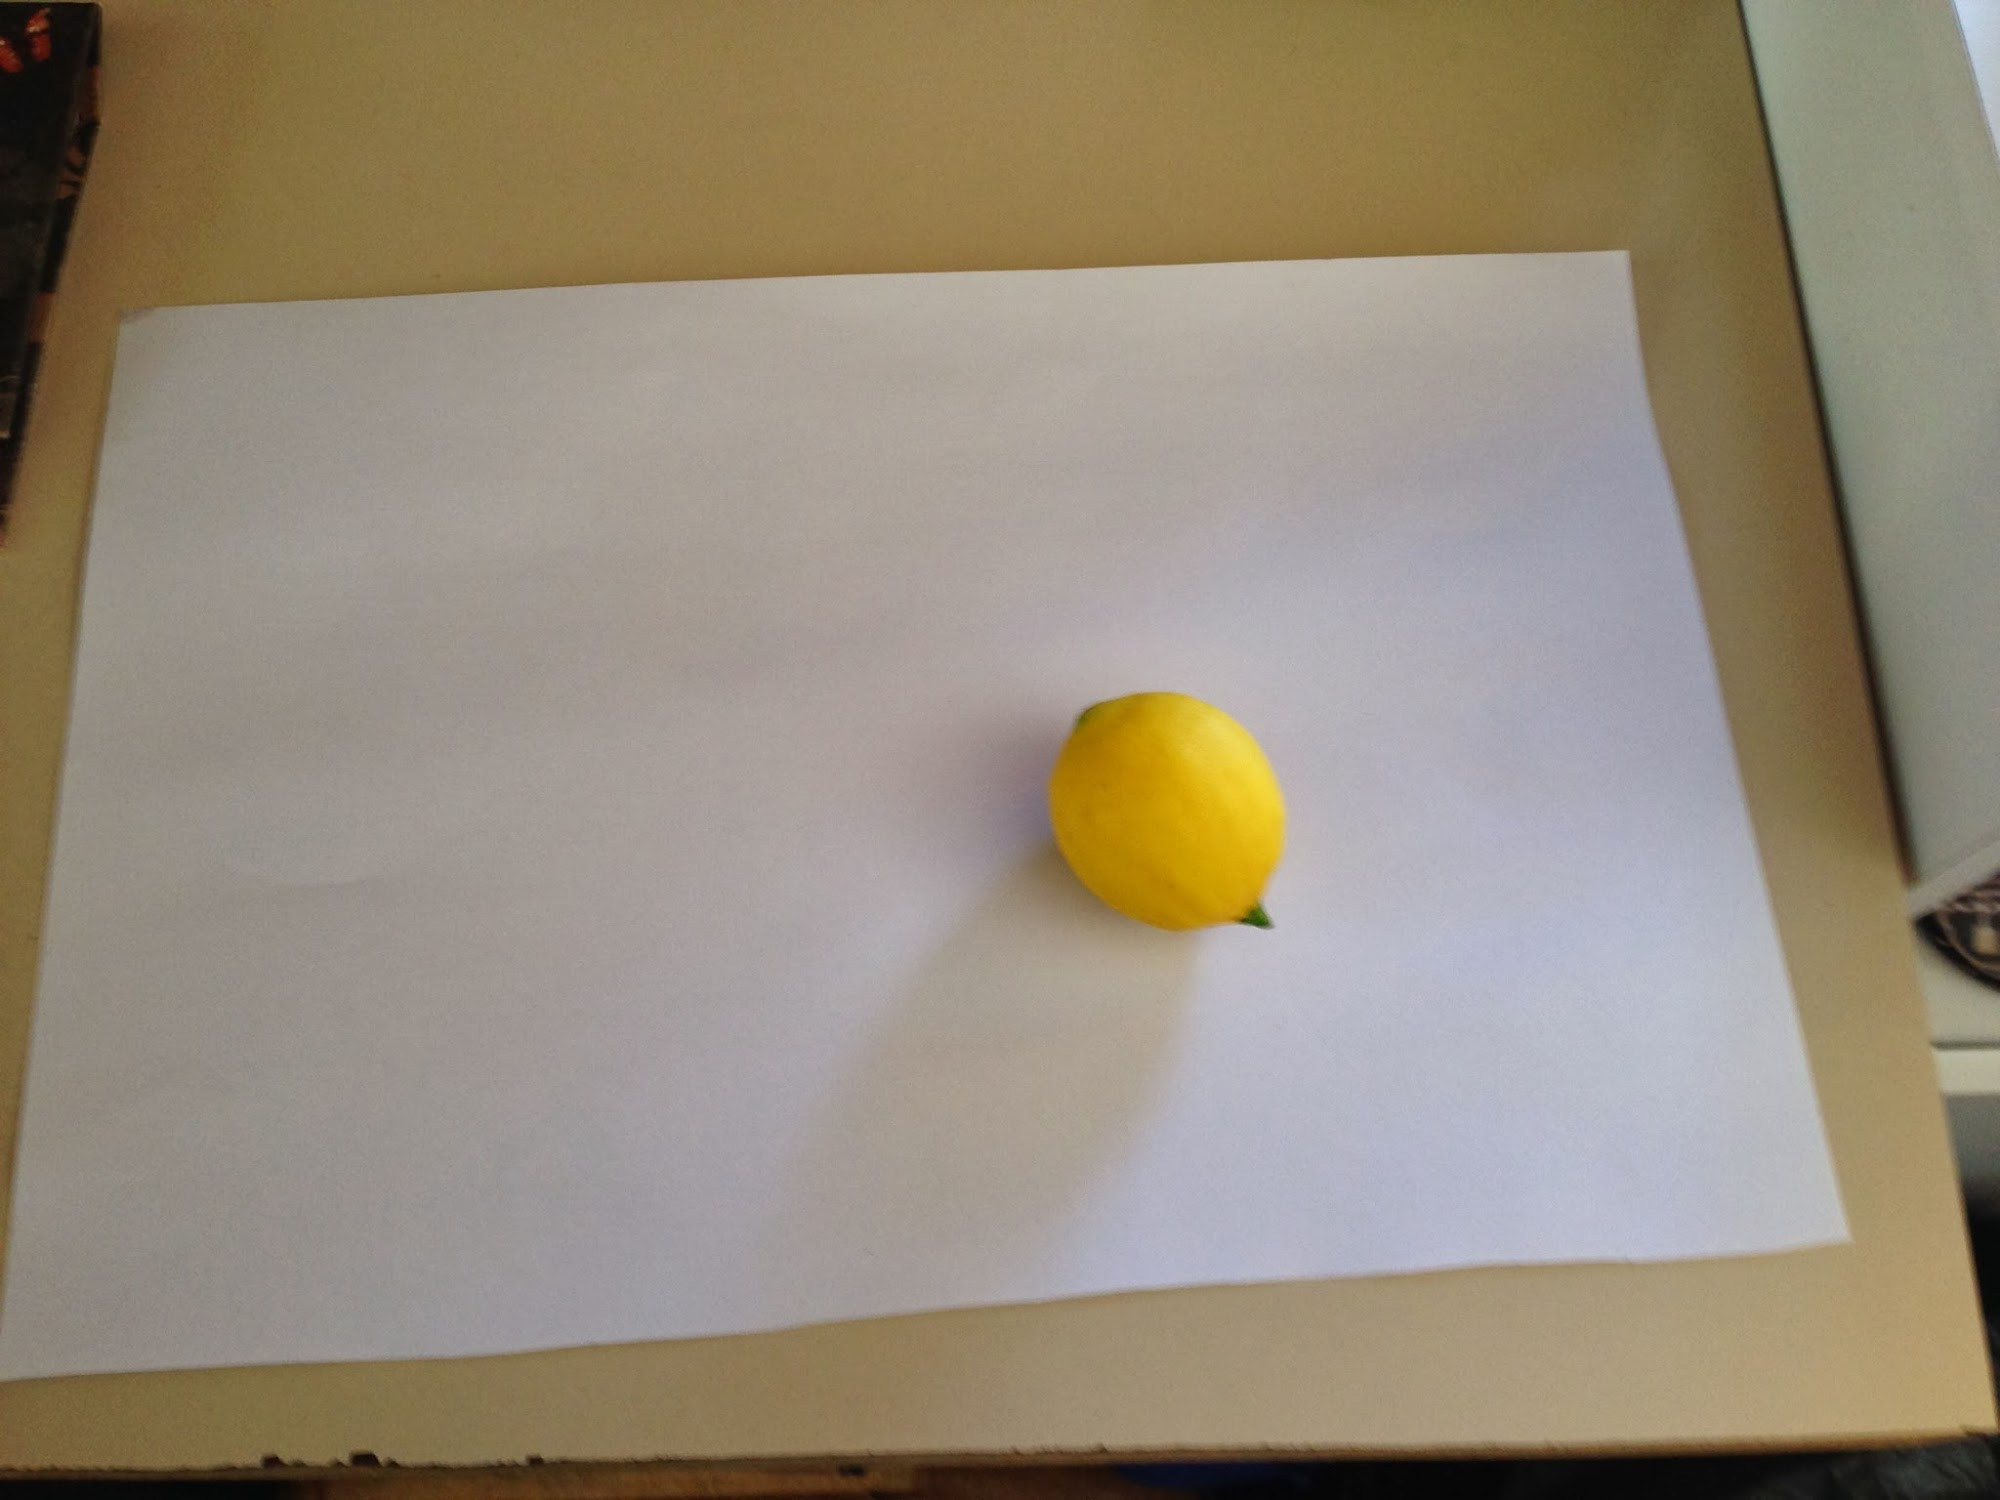 The Lemon And the Paper